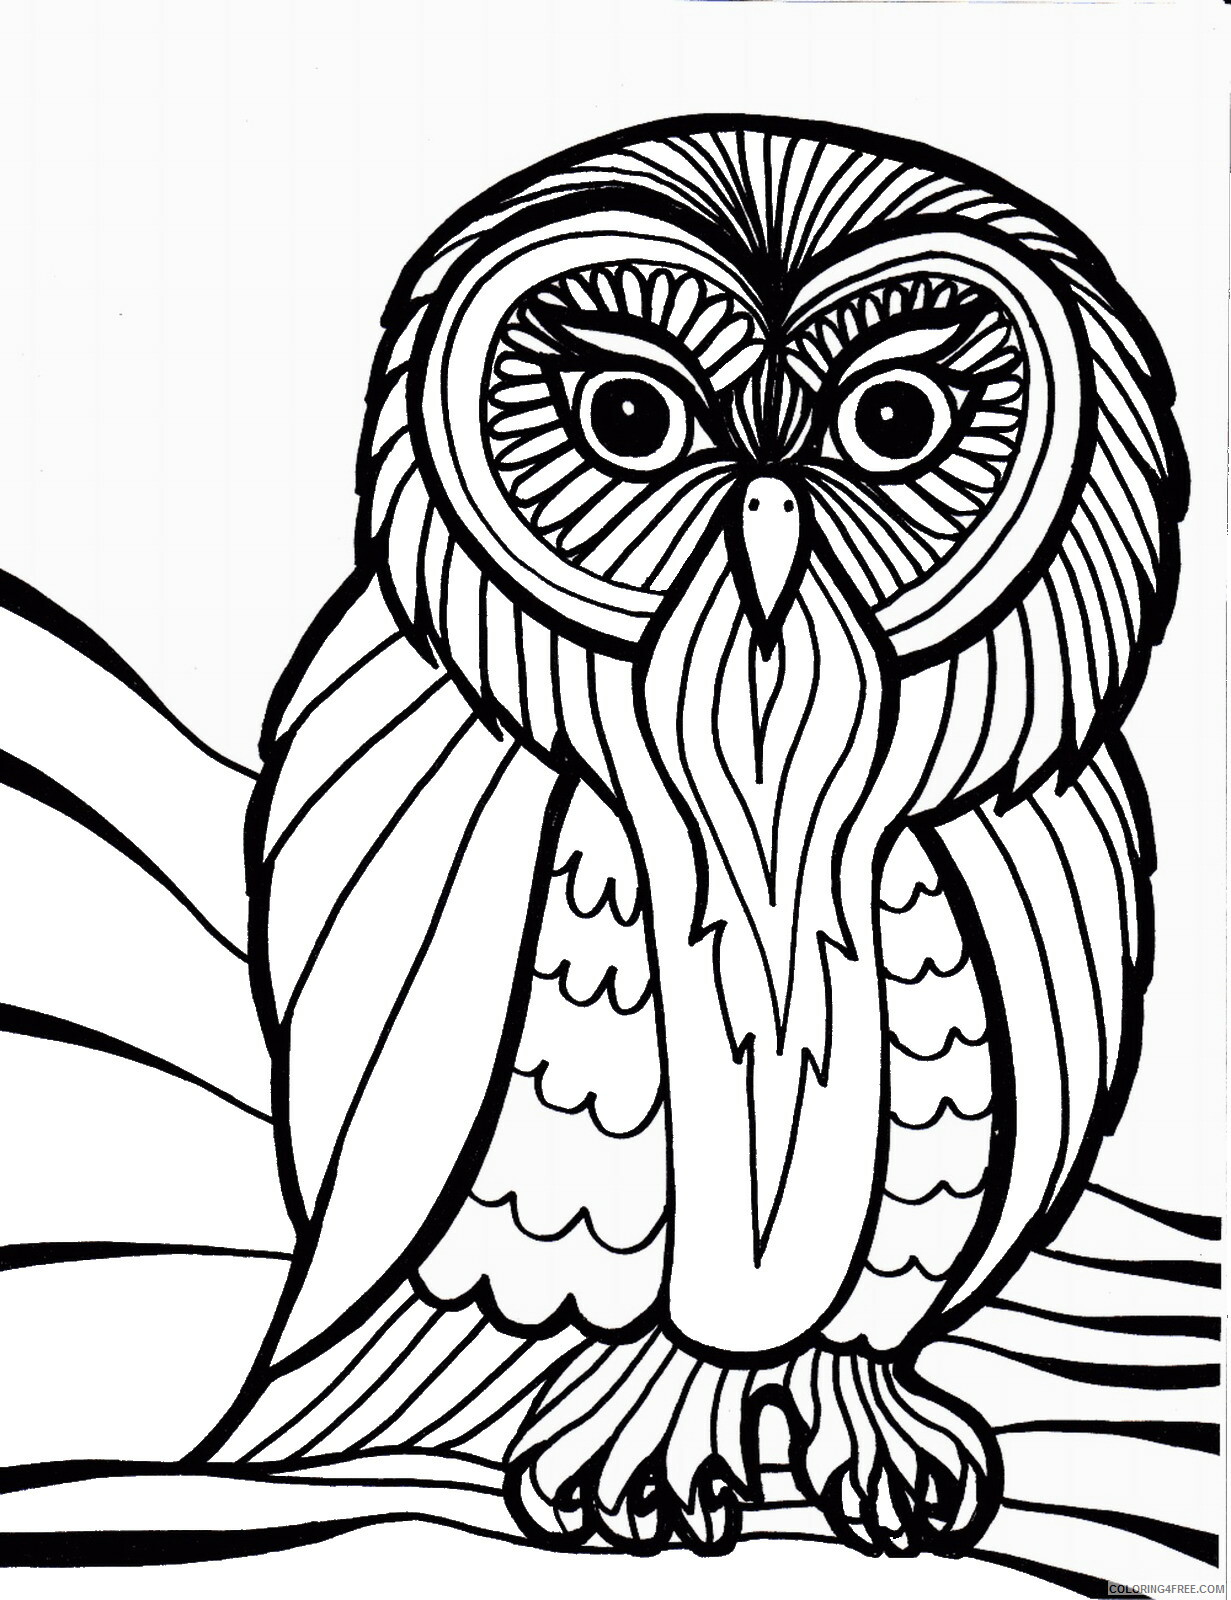 Owl Coloring Pages Animal Printable Sheets Owl_cl_03 2021 3634 Coloring4free